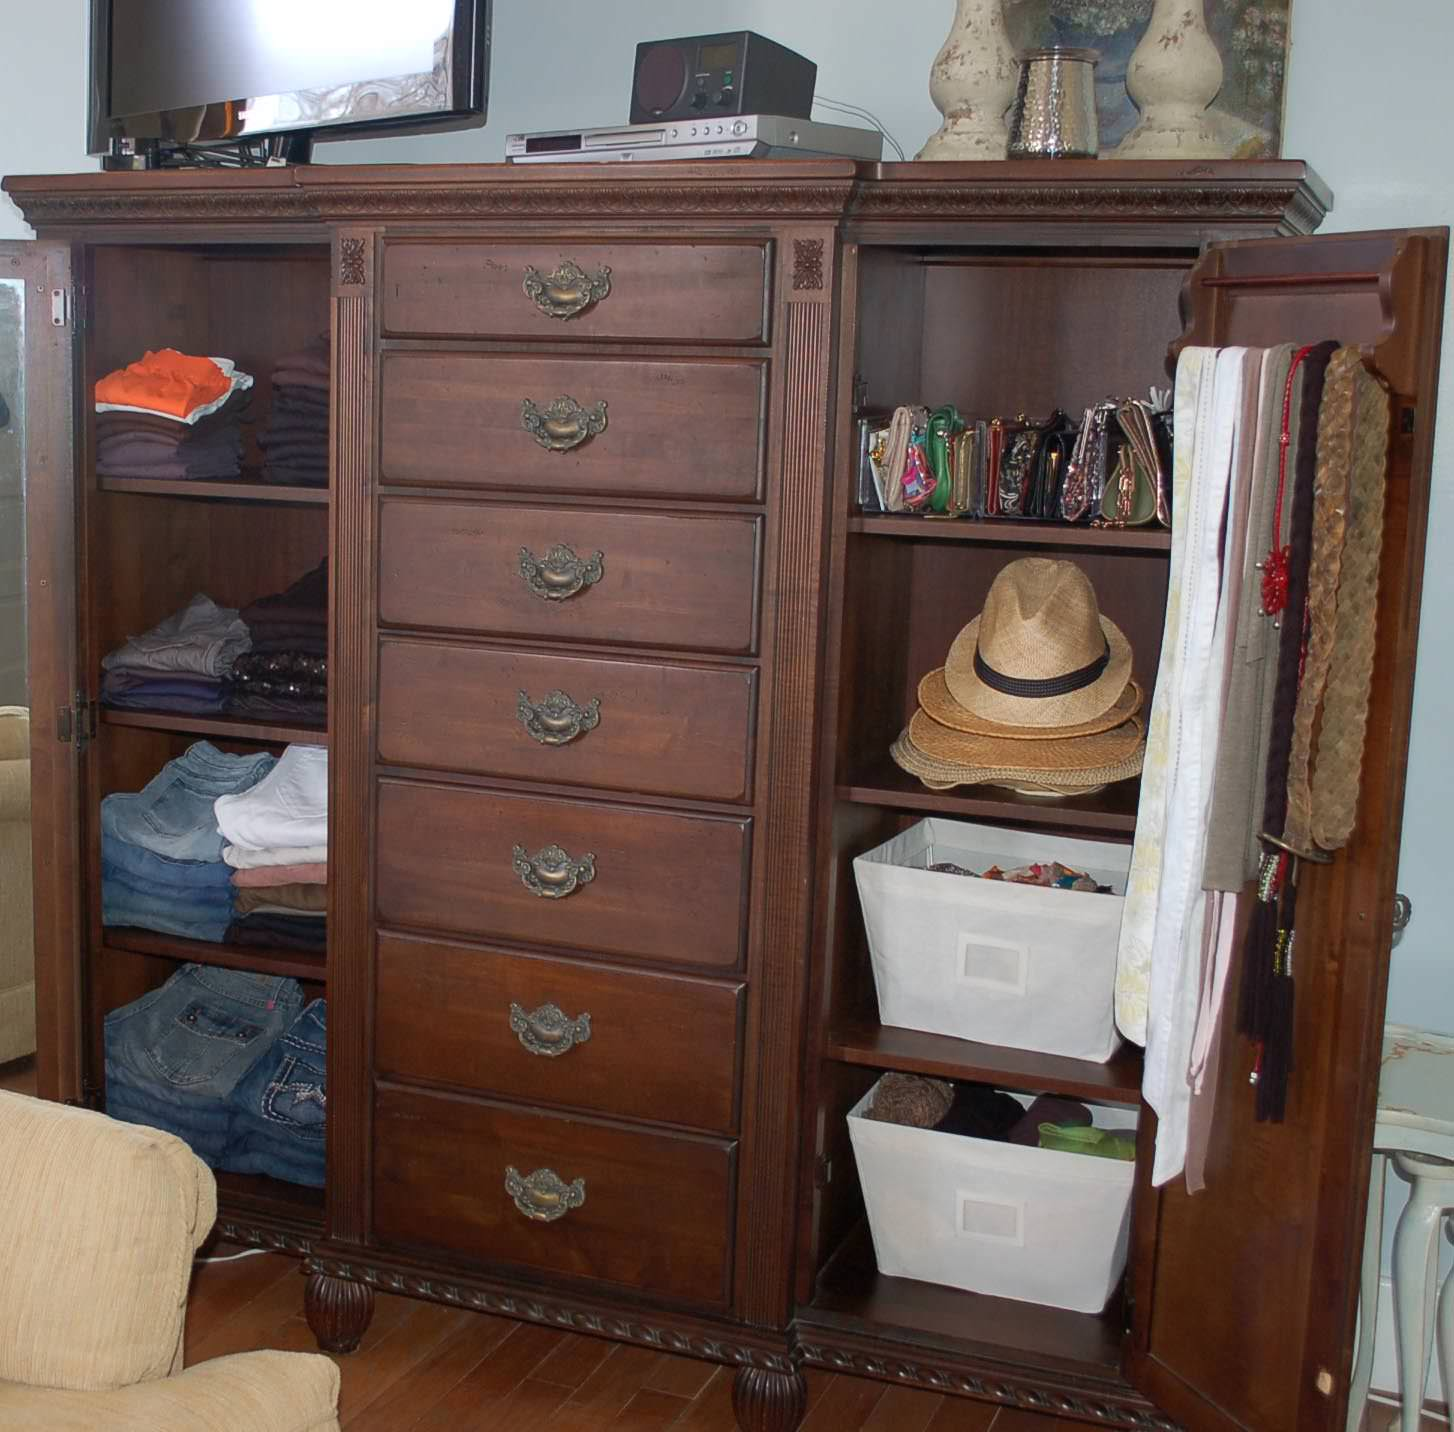 organized dresser, home organized, brown dresser, wooden dresser